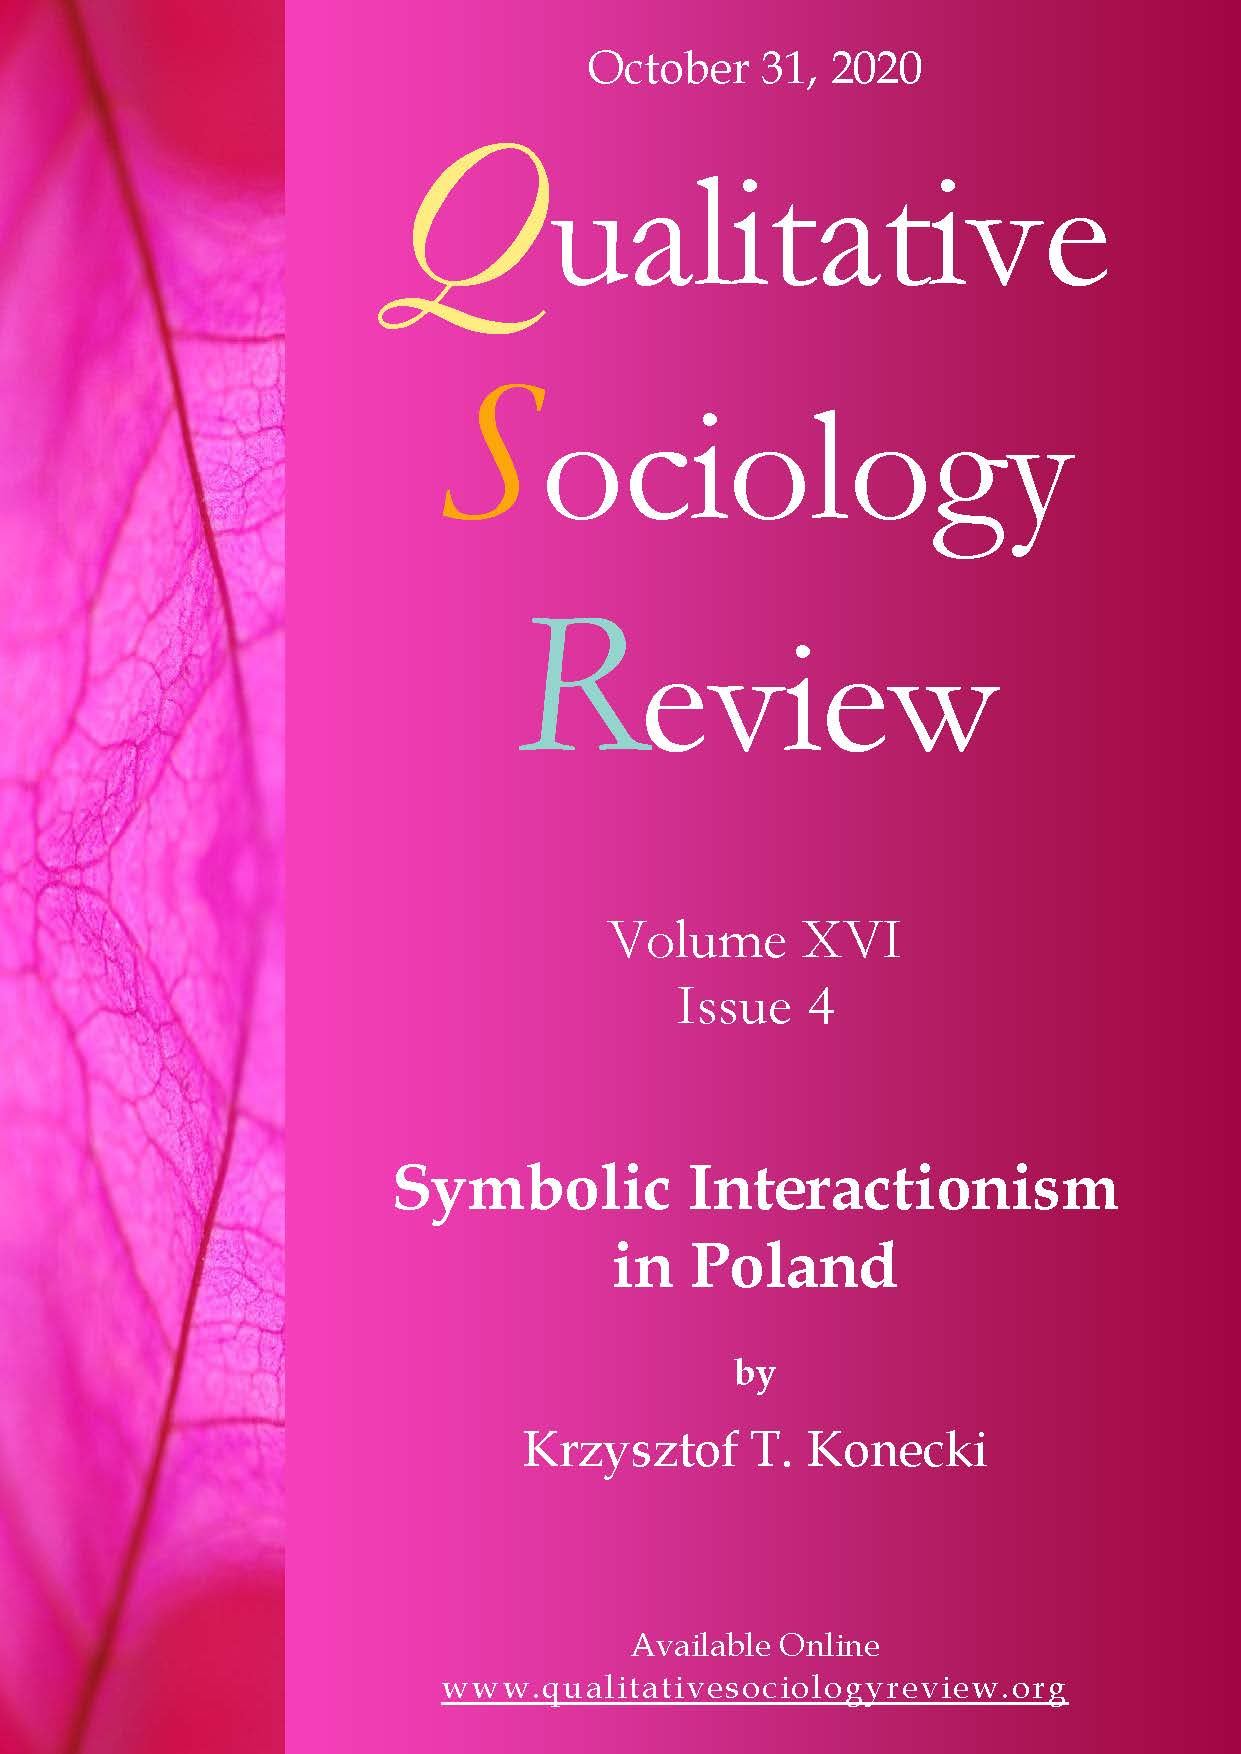 View Vol. 16 No. 4 (2020): Symbolic Interactionism in Poland